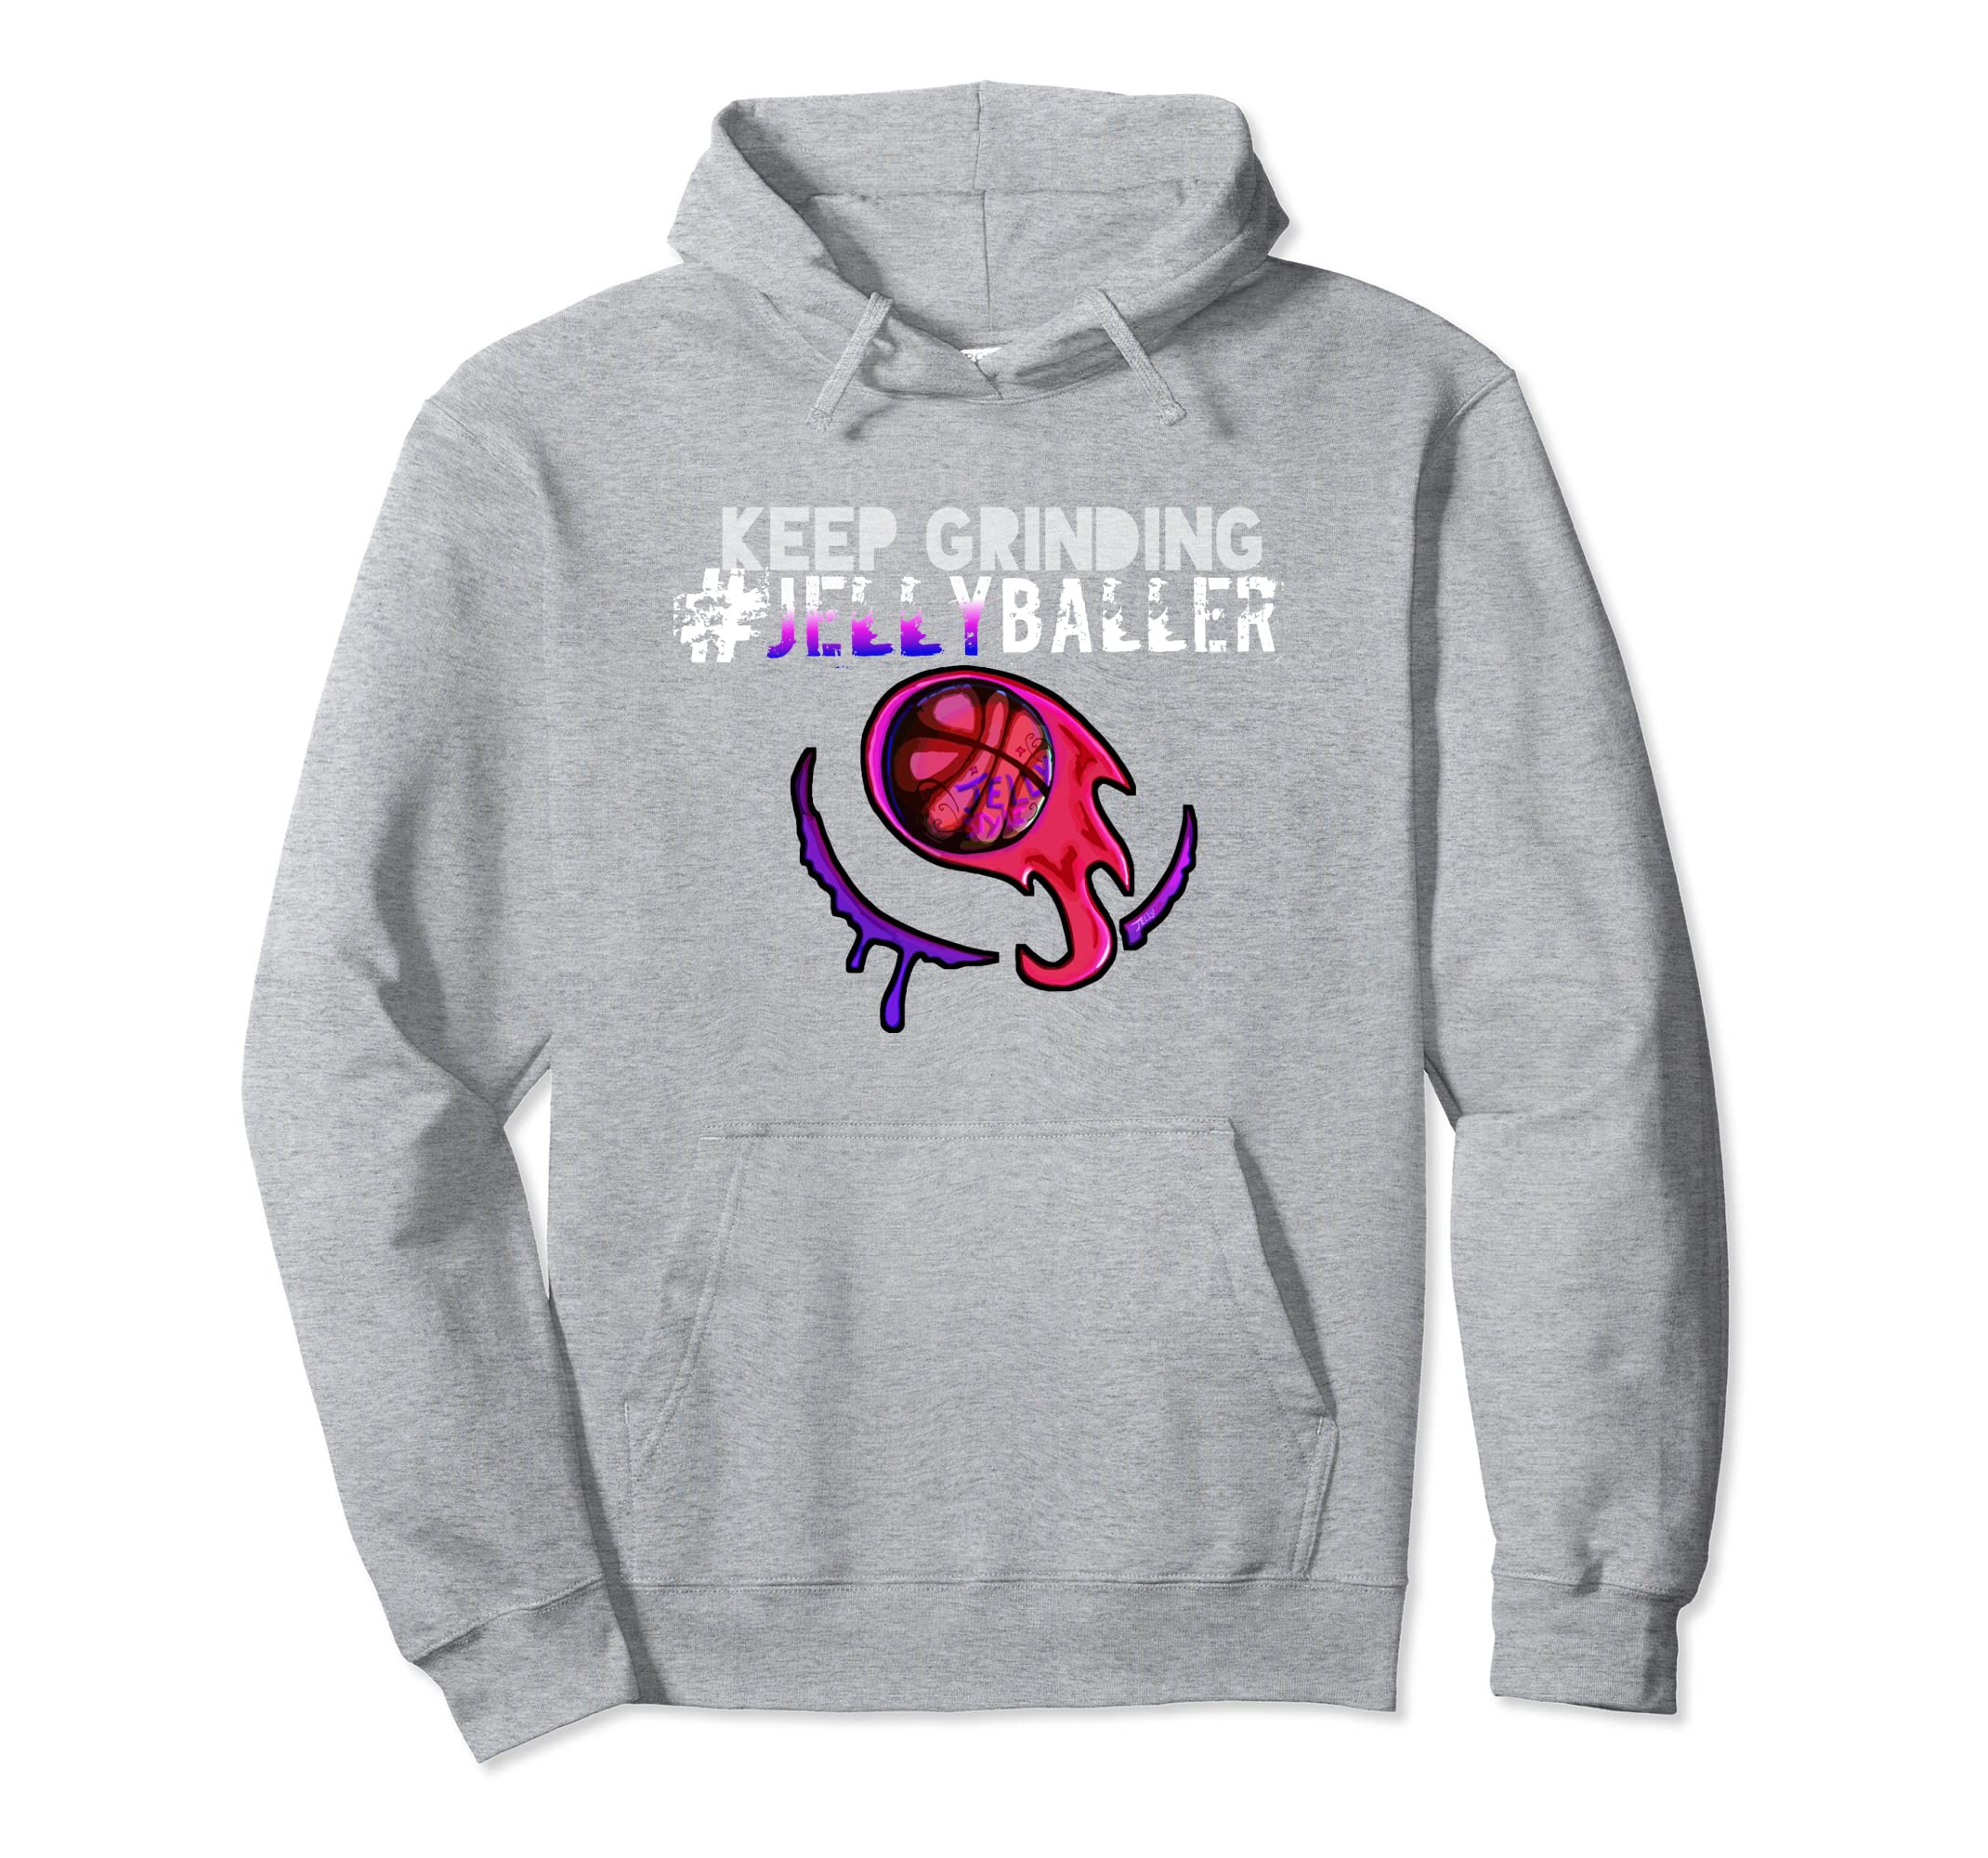 Hashtag Jelly Baller Hoodie-mt